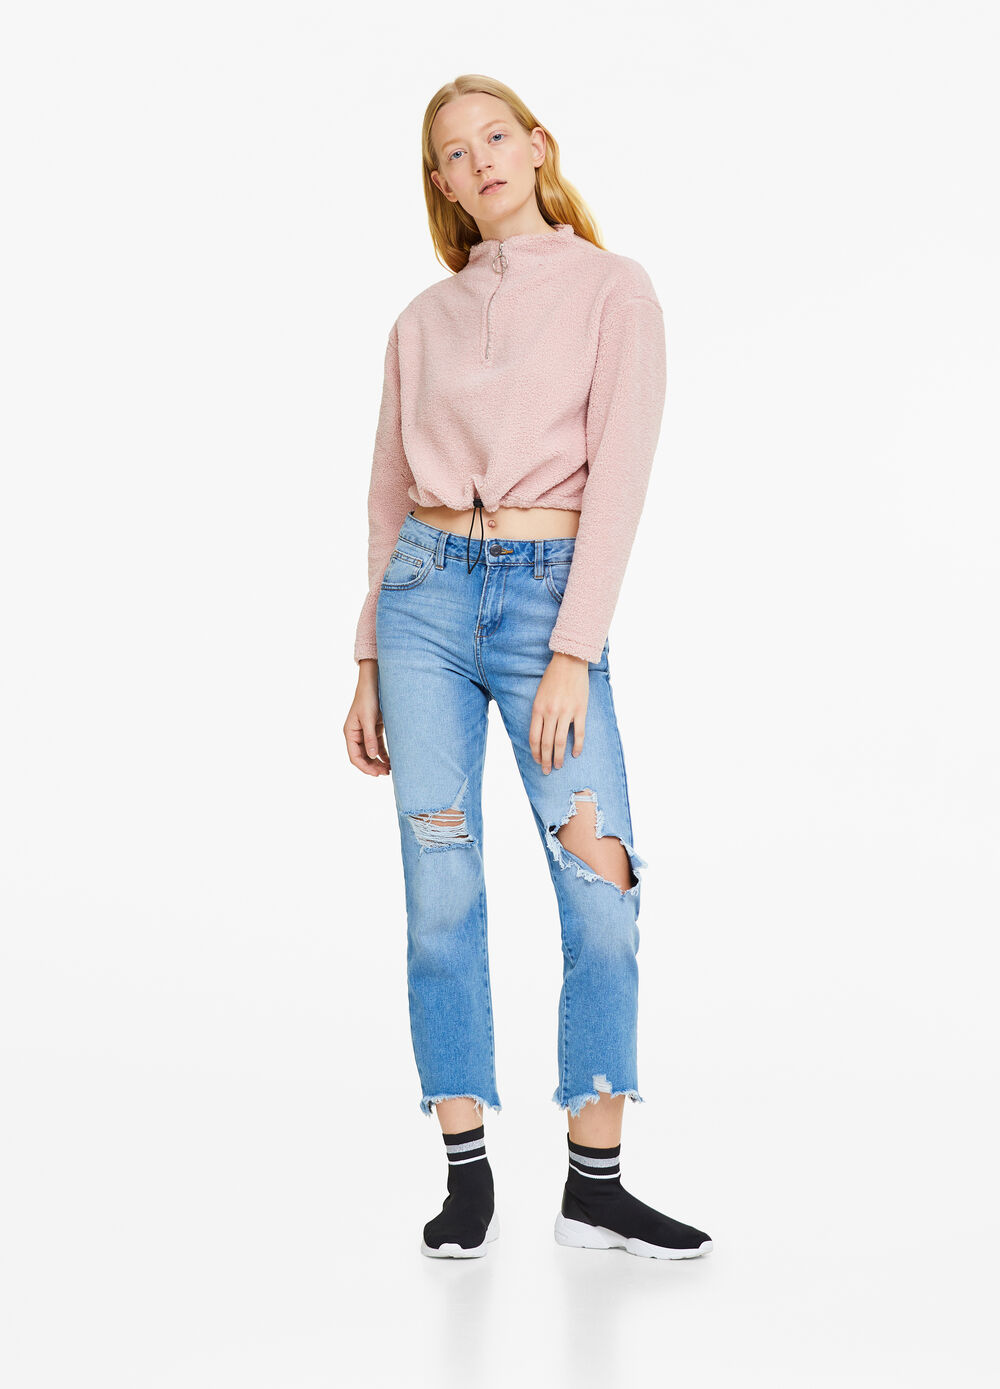 Solid colour crop sweatshirt with high neck